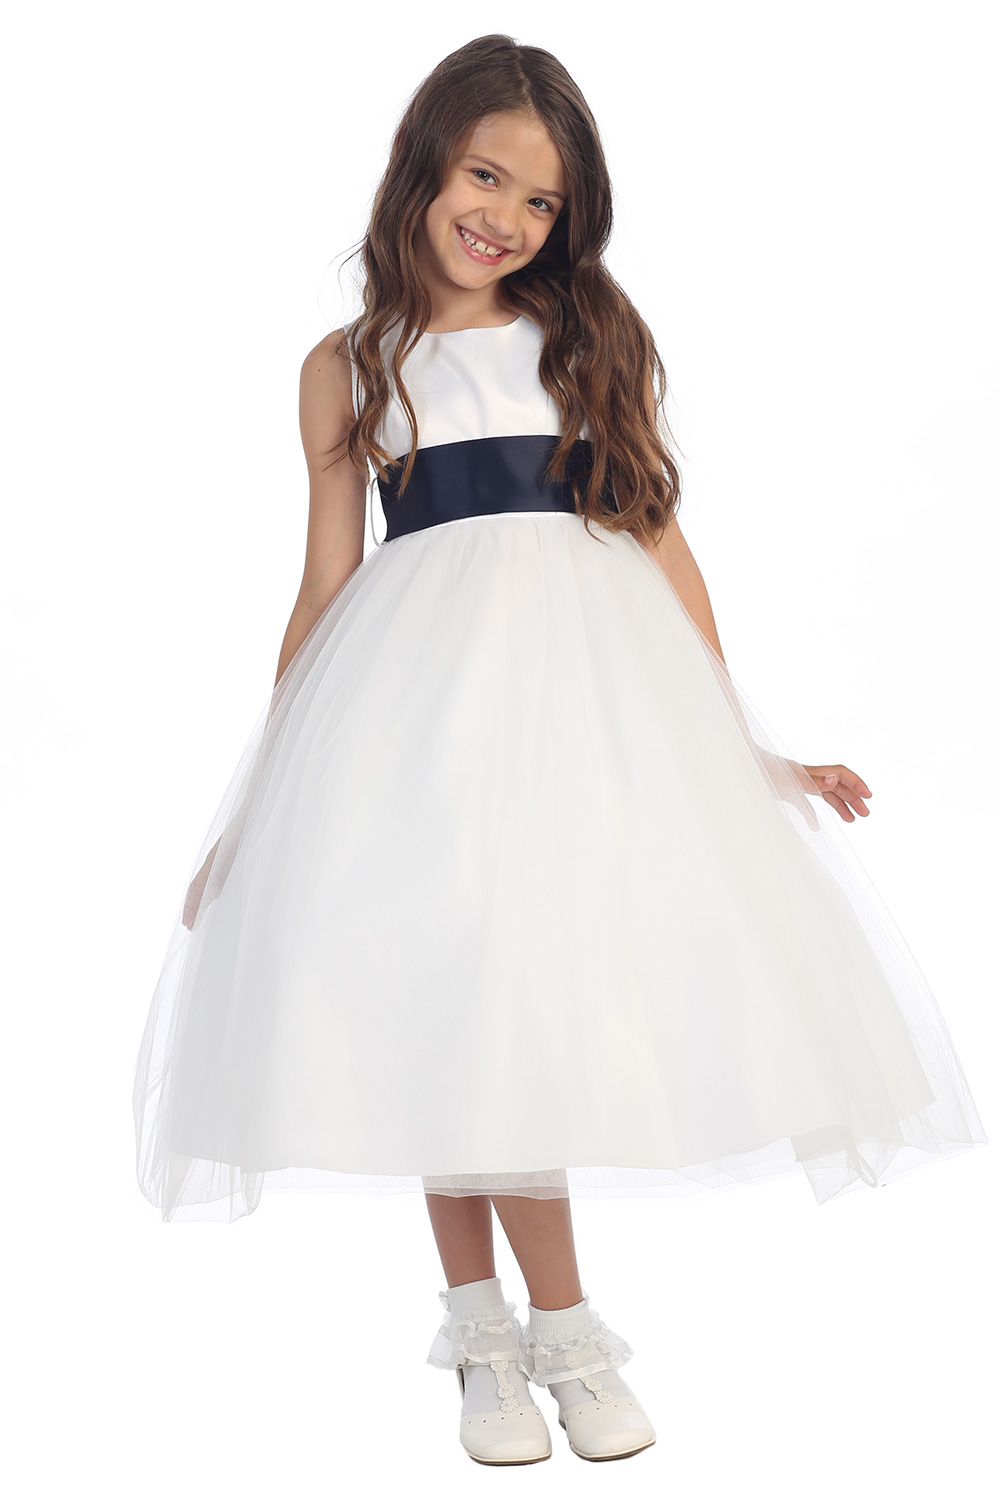 White Flower Girl Dress Black Sash 102